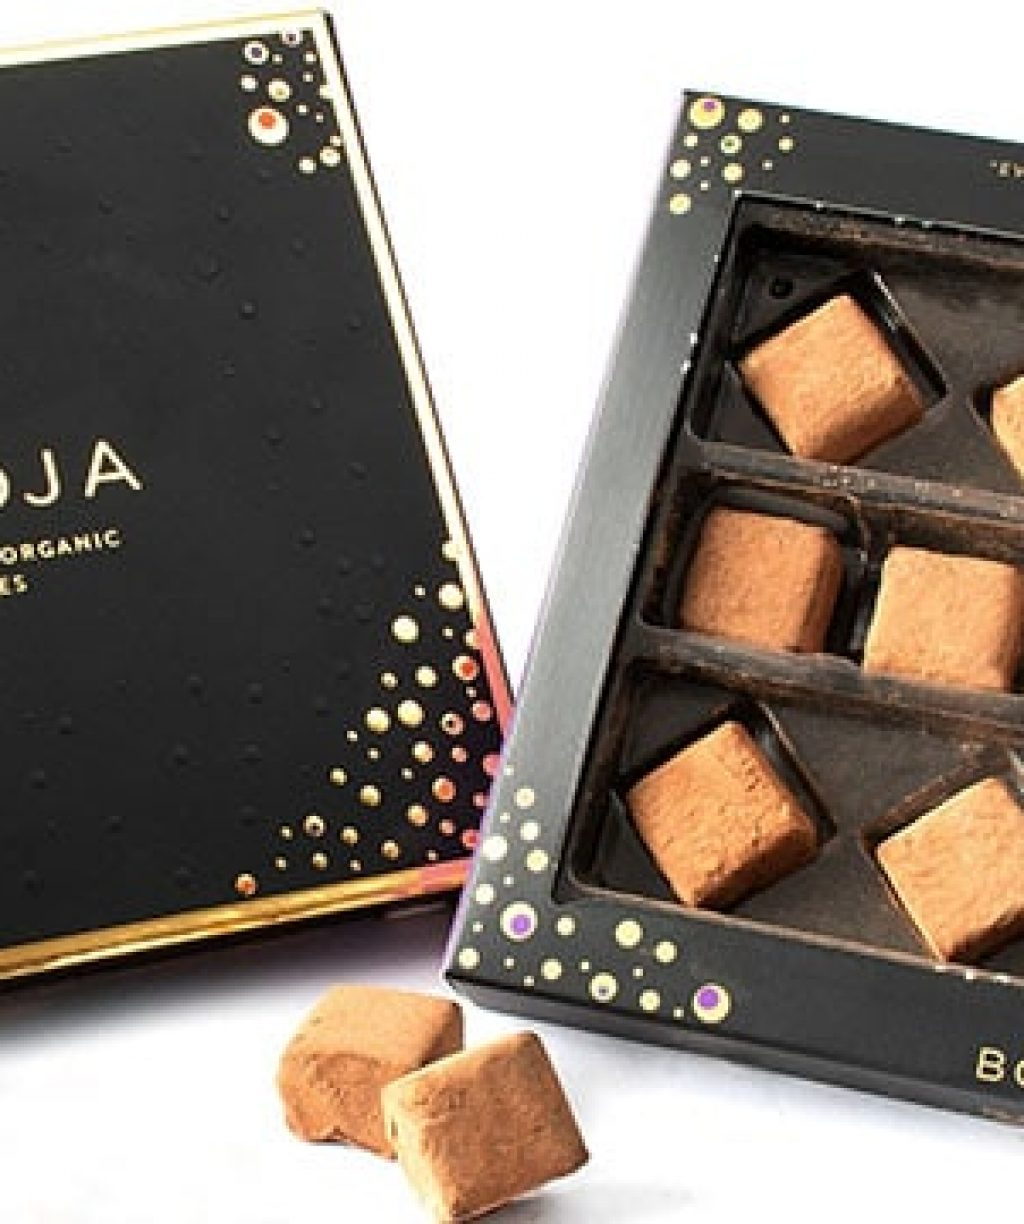 booja booja truffle selection